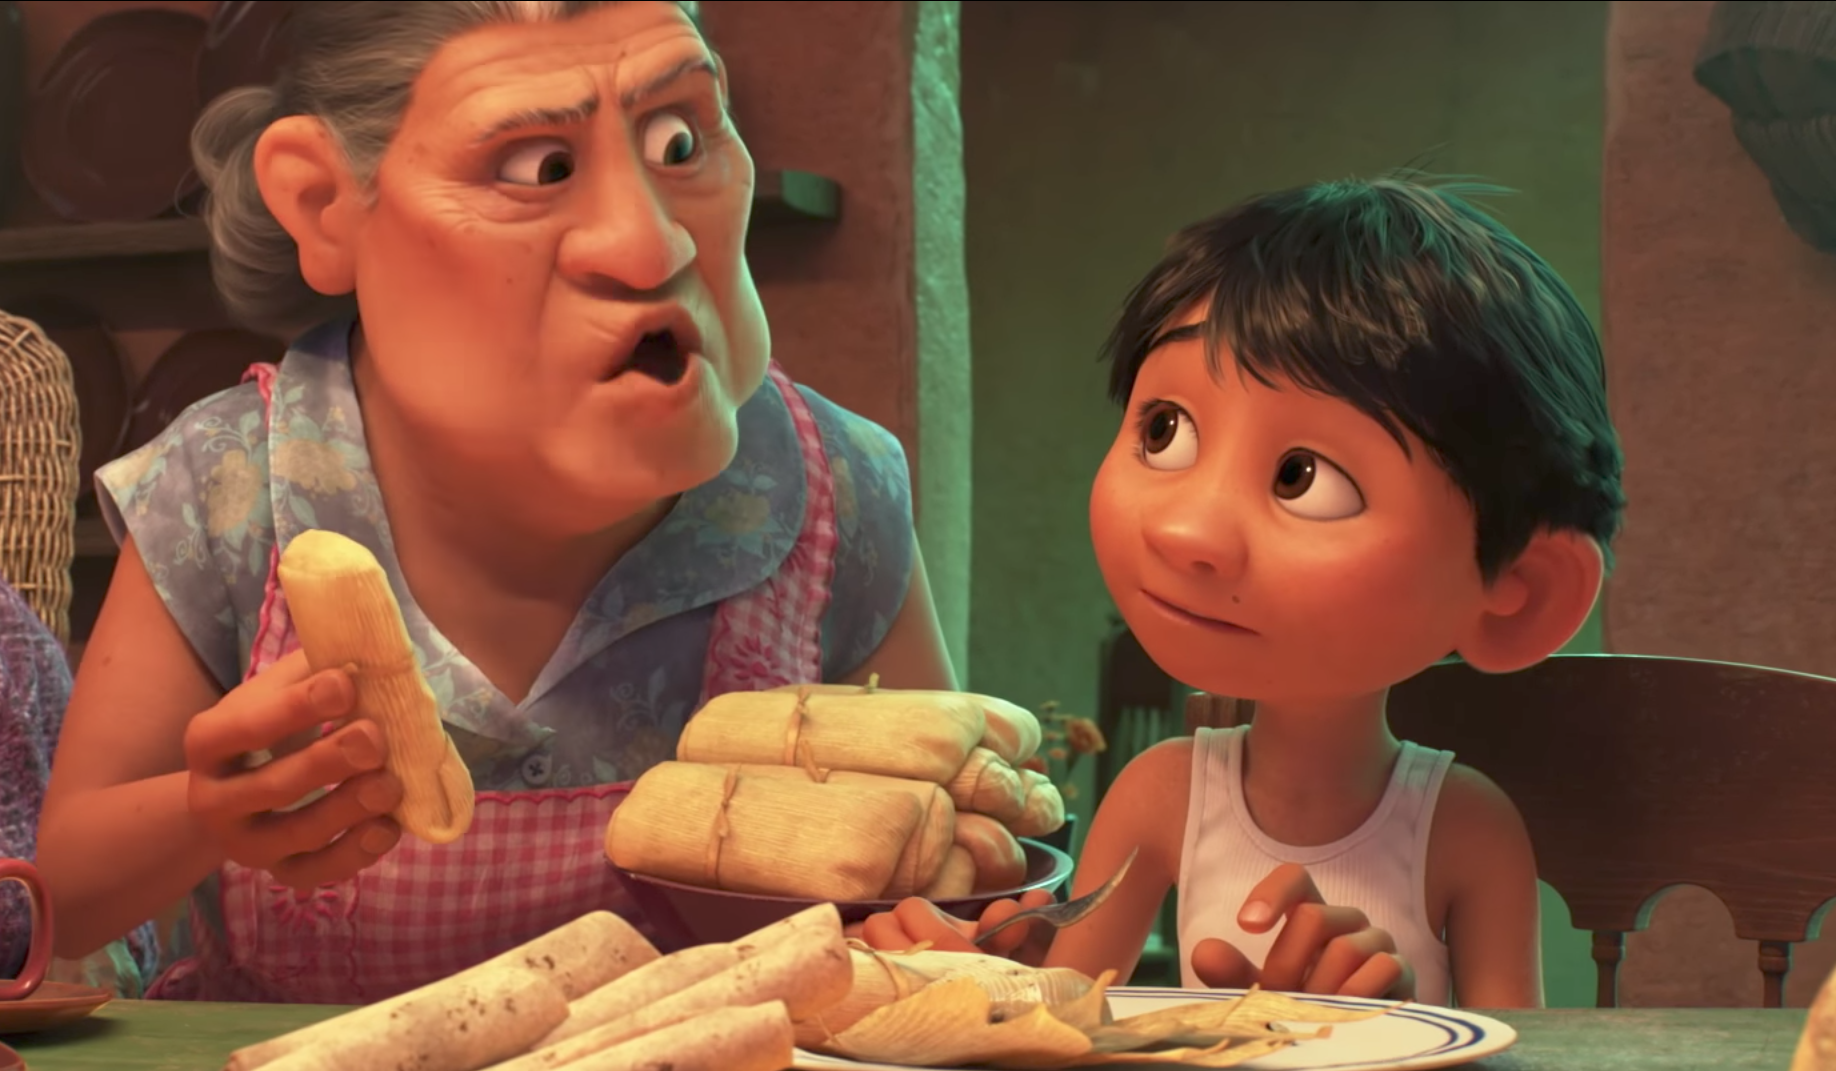 'Coco' Trailer: Pixar's Love Letter to Mexico Looks Absolutely Stunning